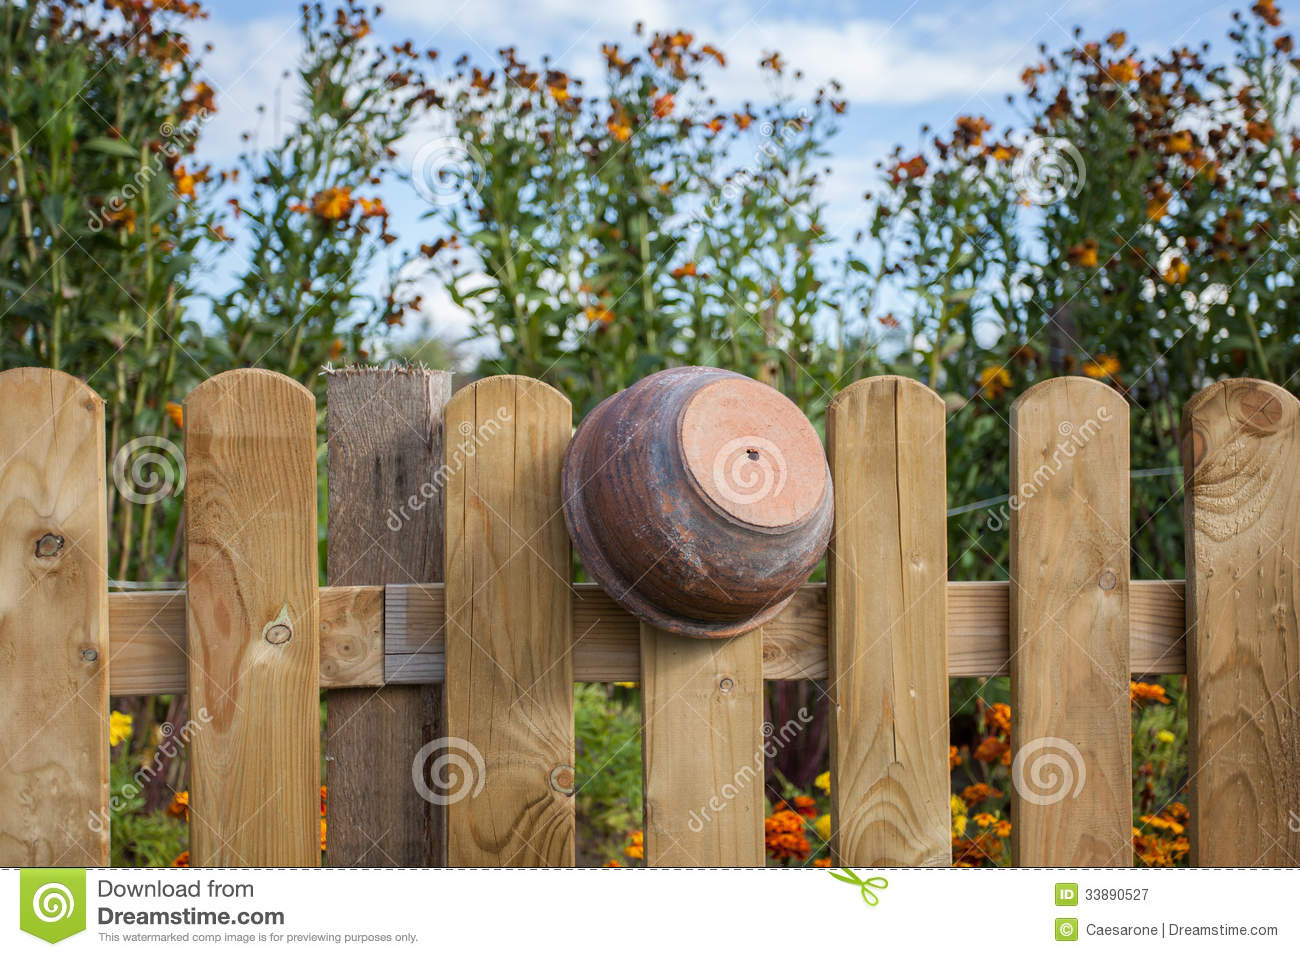 Clay pot on the fence